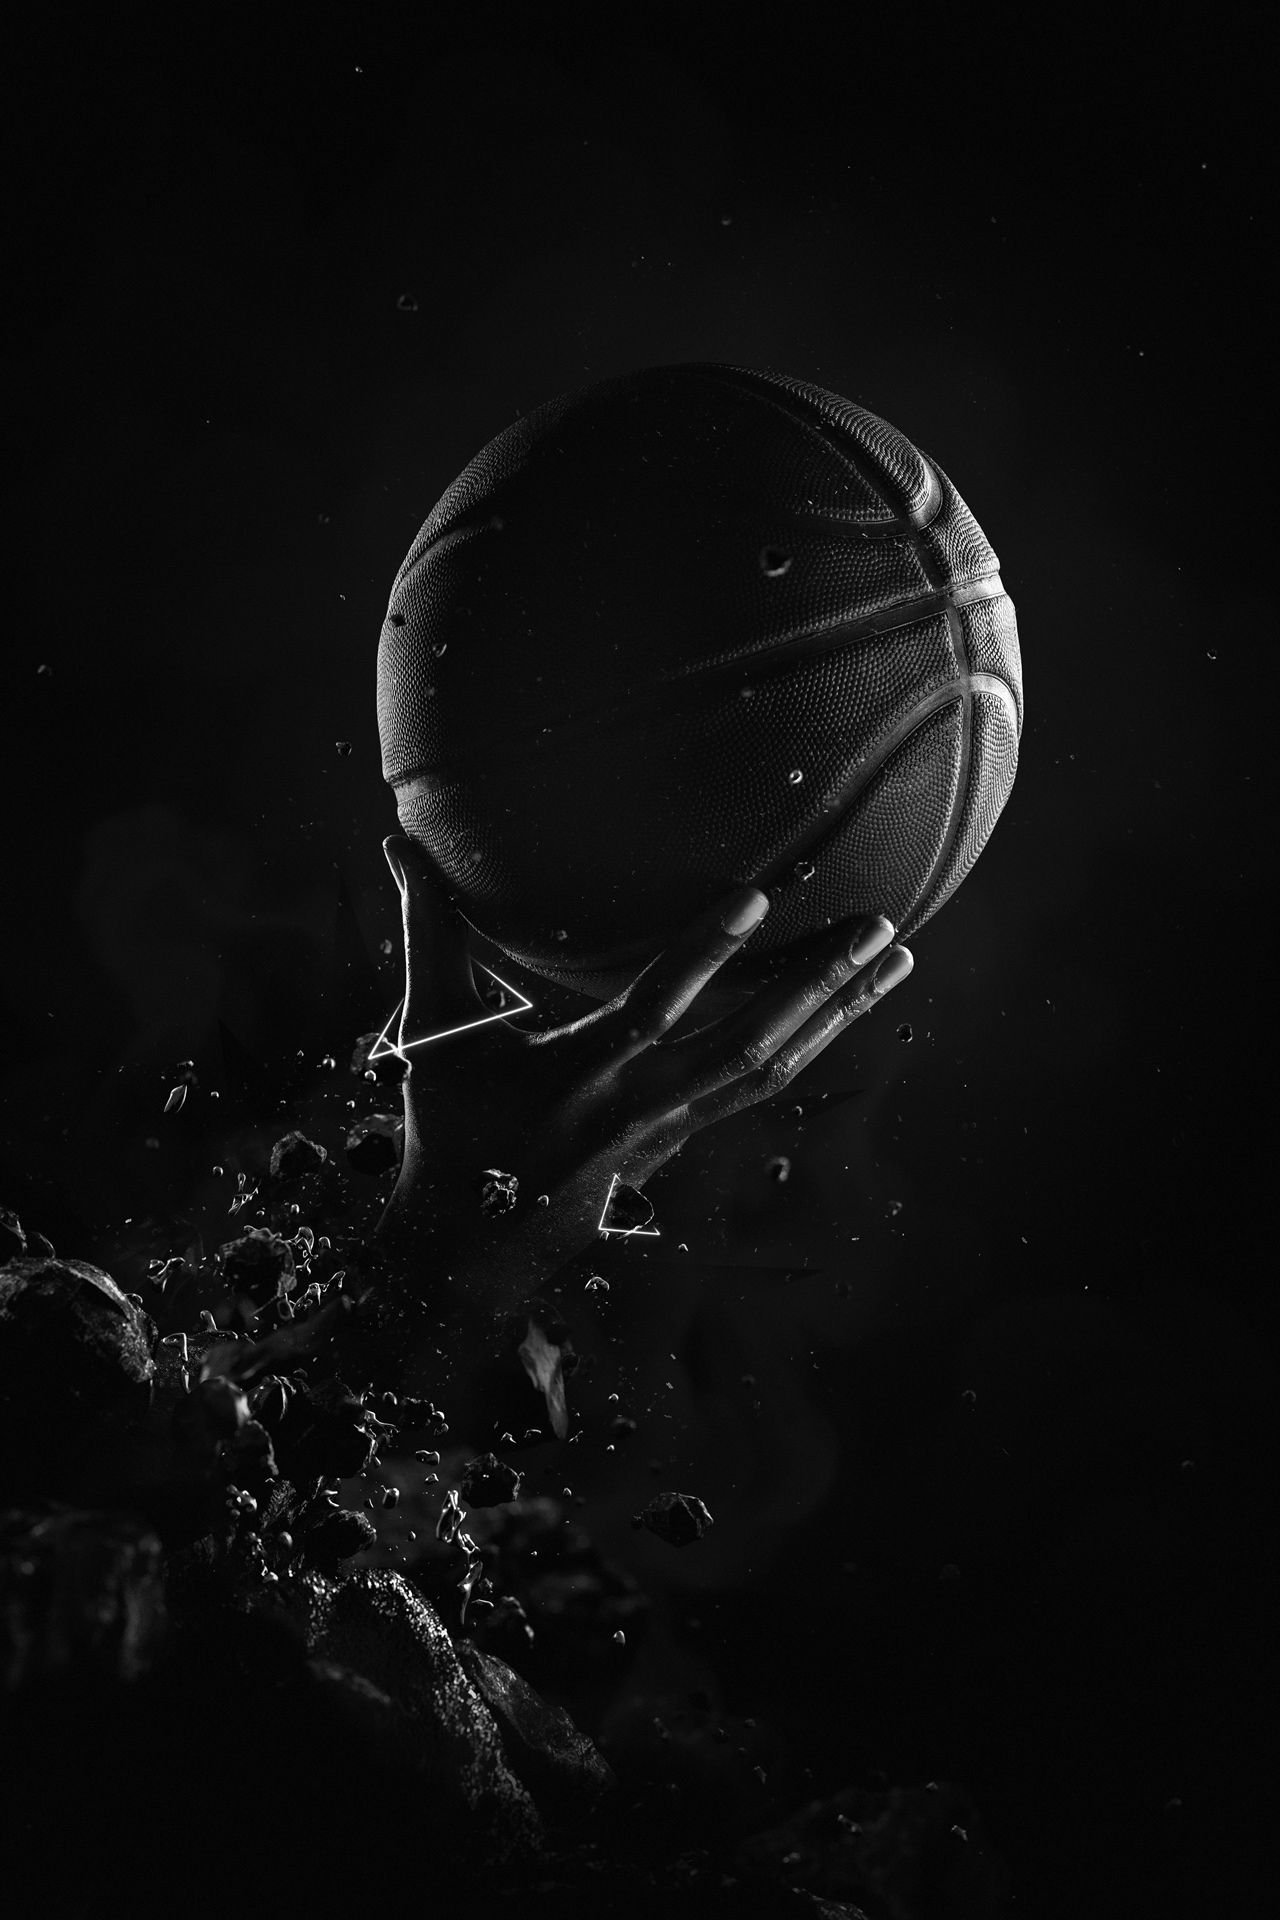 hand of black man posing as basketball player emerging from the ground holding basket ball black and white low lighting by Simon Duhamel for W-Hoop